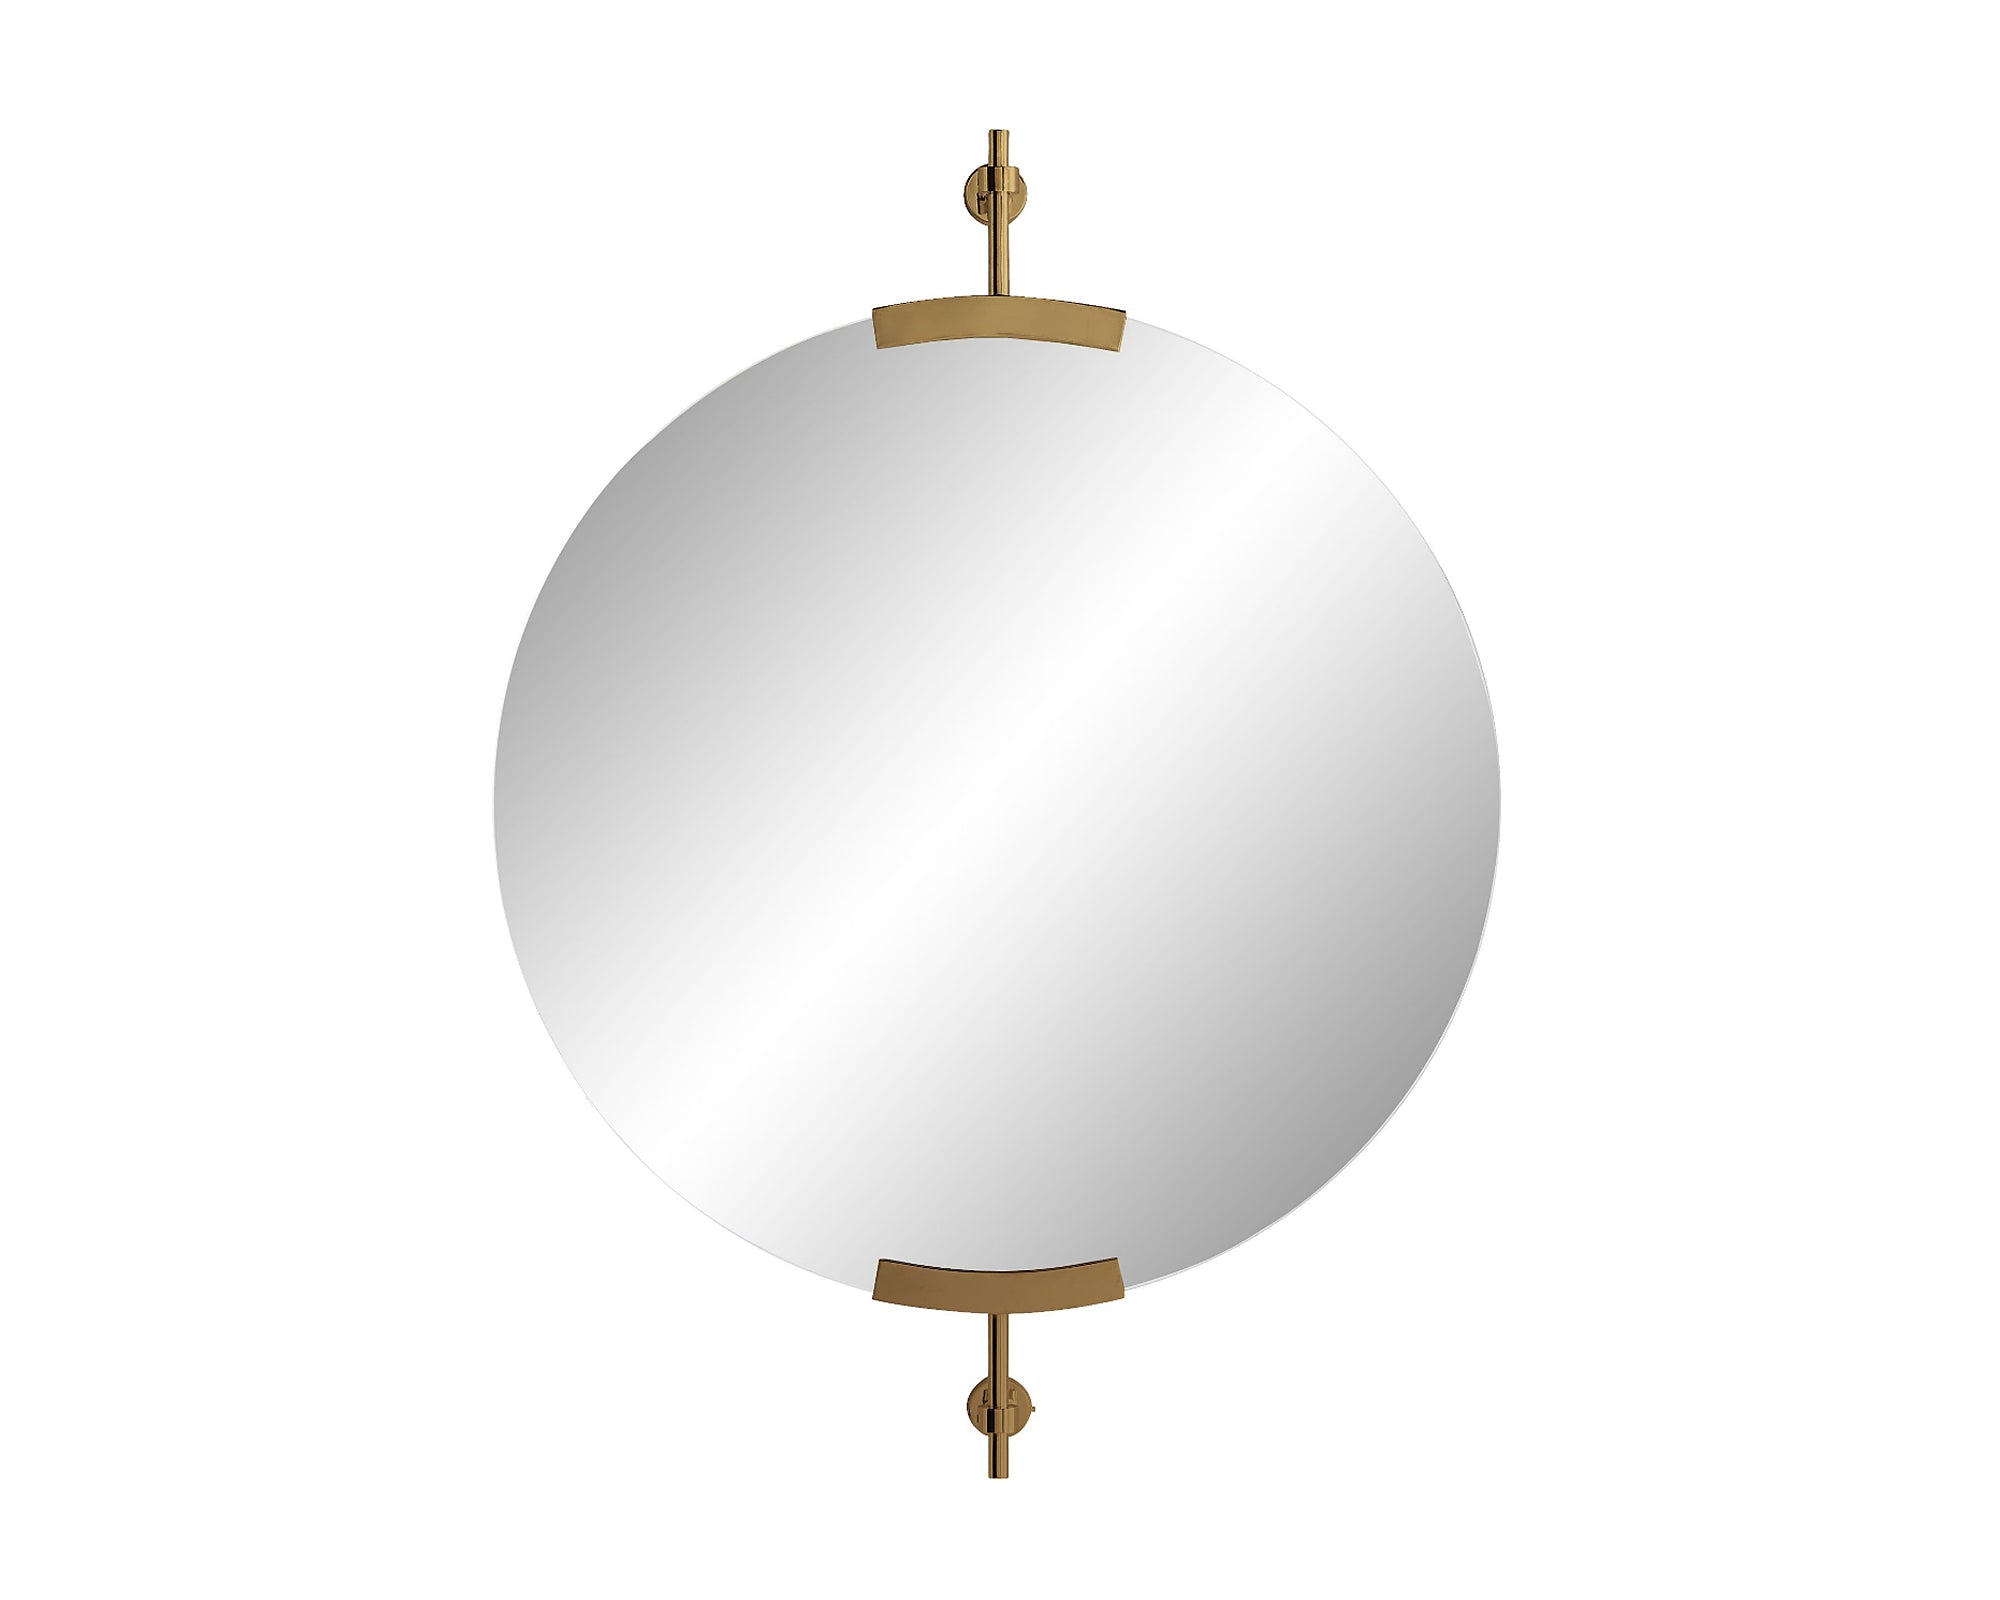 Madden Round Mirror - Antique Brass